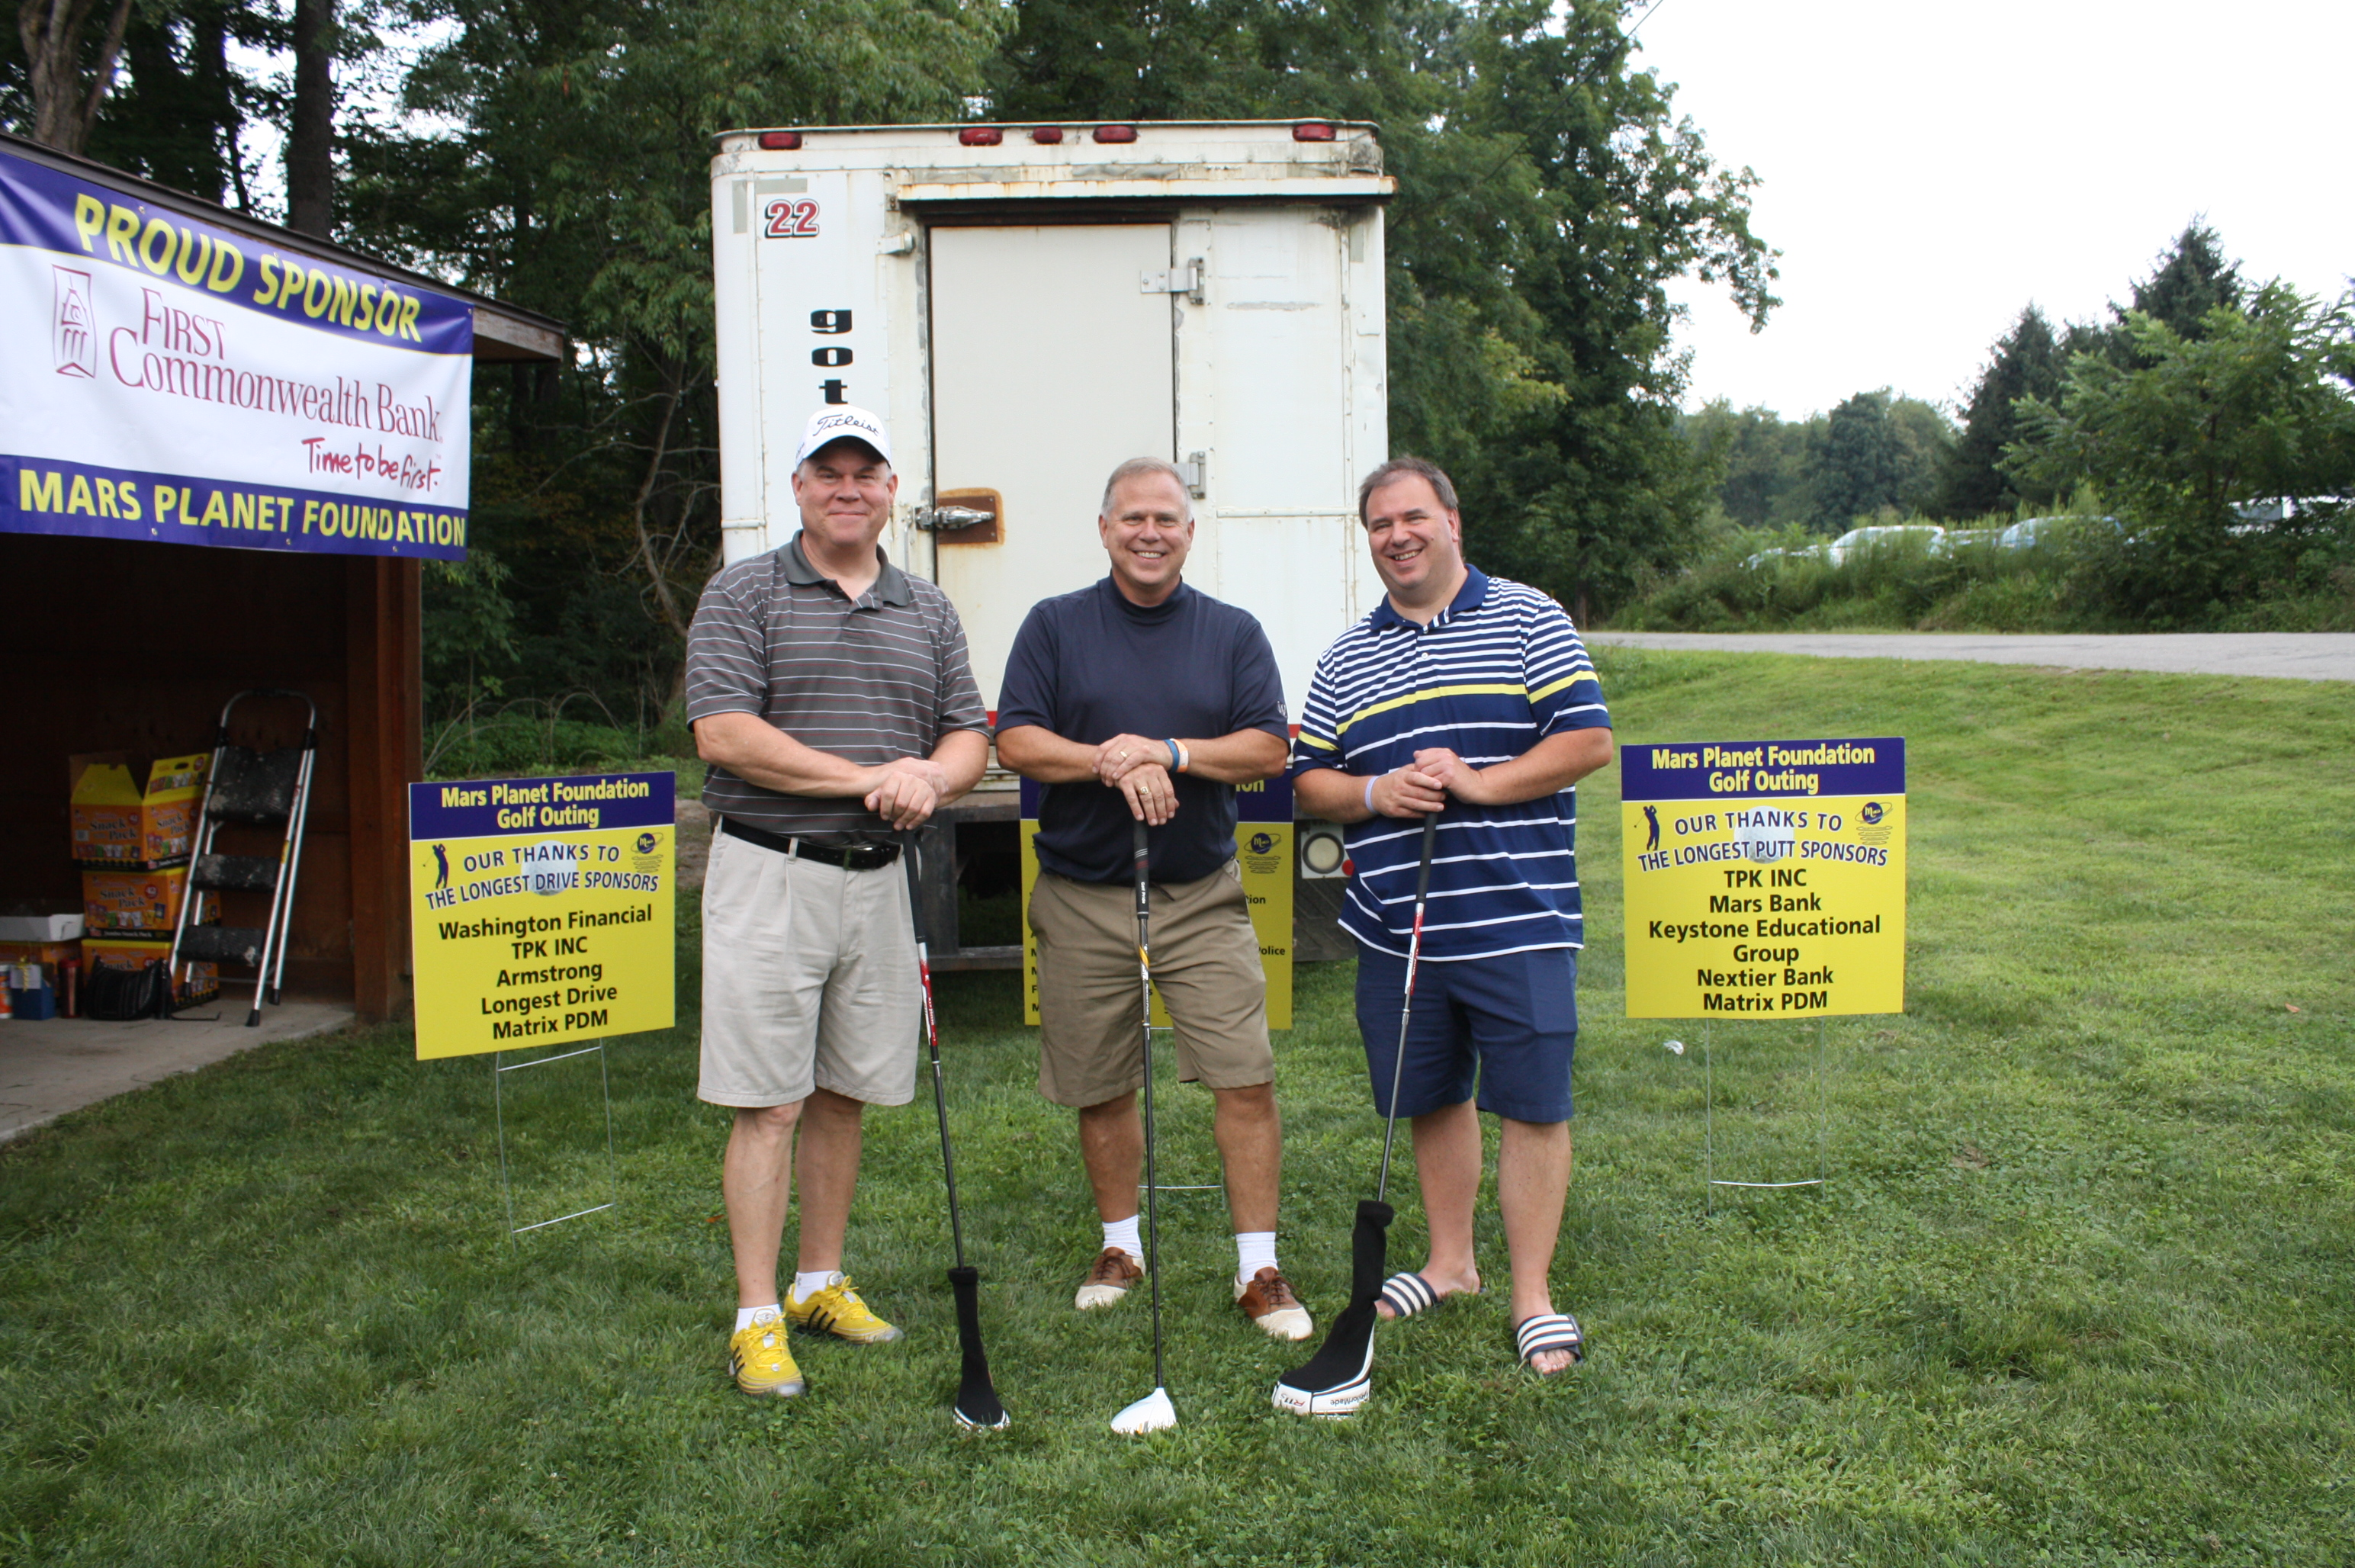 2019 Mars Planet Foundation Golf Outing gallery image #3